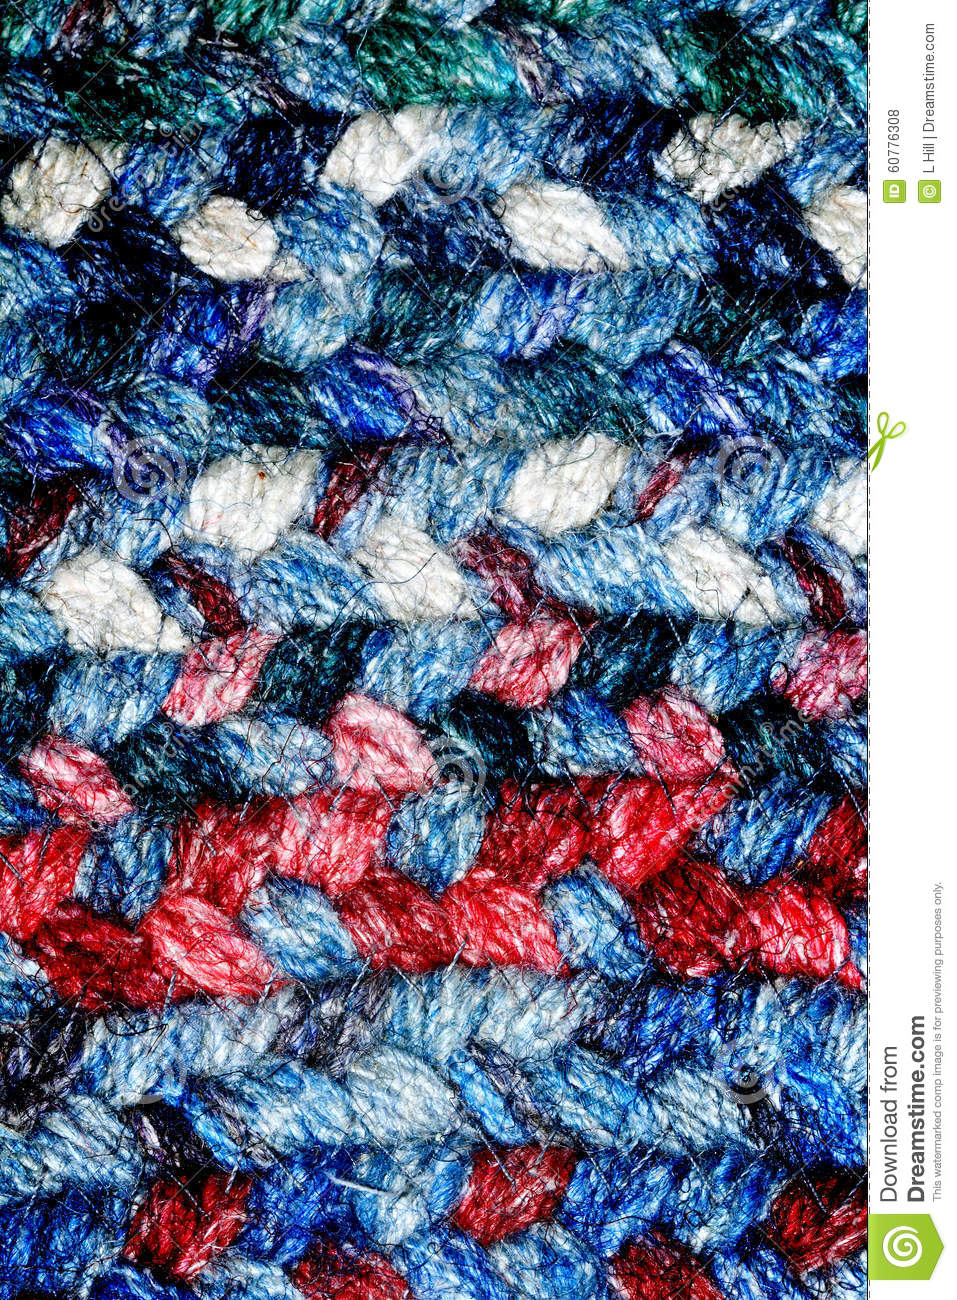 red white and blue braided rug stock photo image 60776308. Black Bedroom Furniture Sets. Home Design Ideas